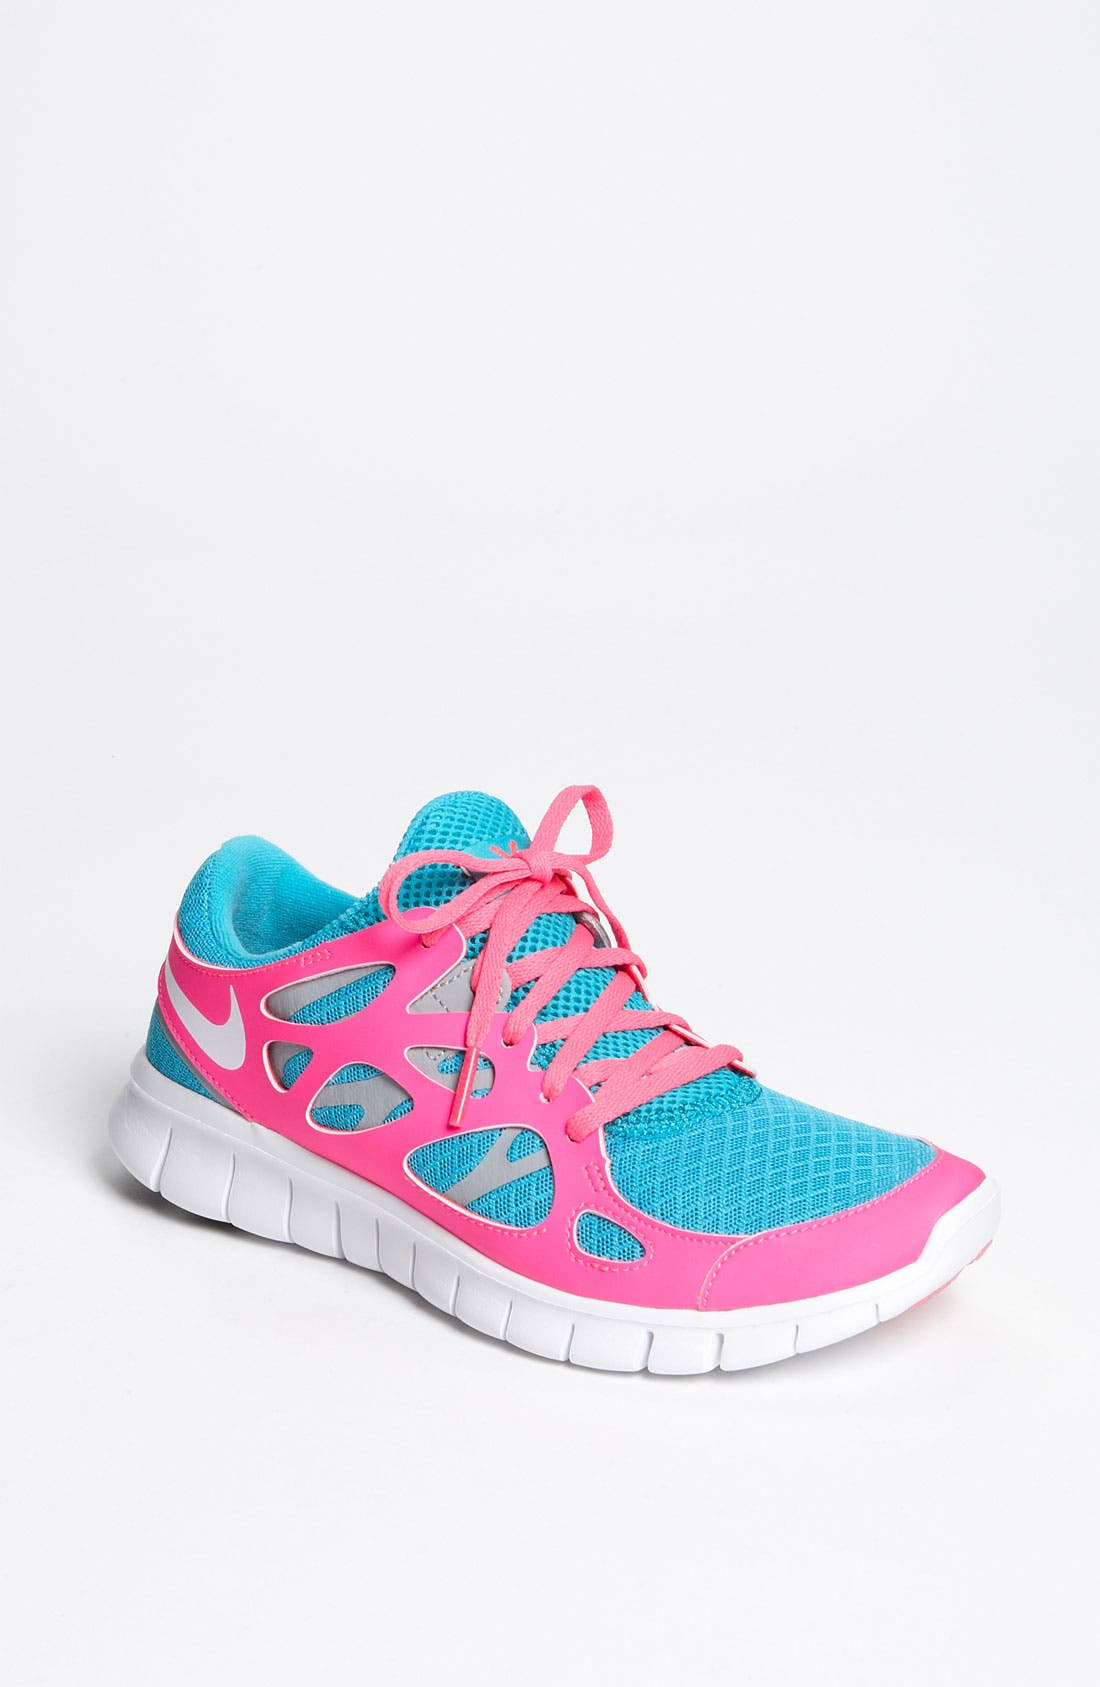 sports shoes 85a6d 51cf8 women women women  free 2 Run Run Run Run Nordstrom Running Shoe   Nike  zpfUqq